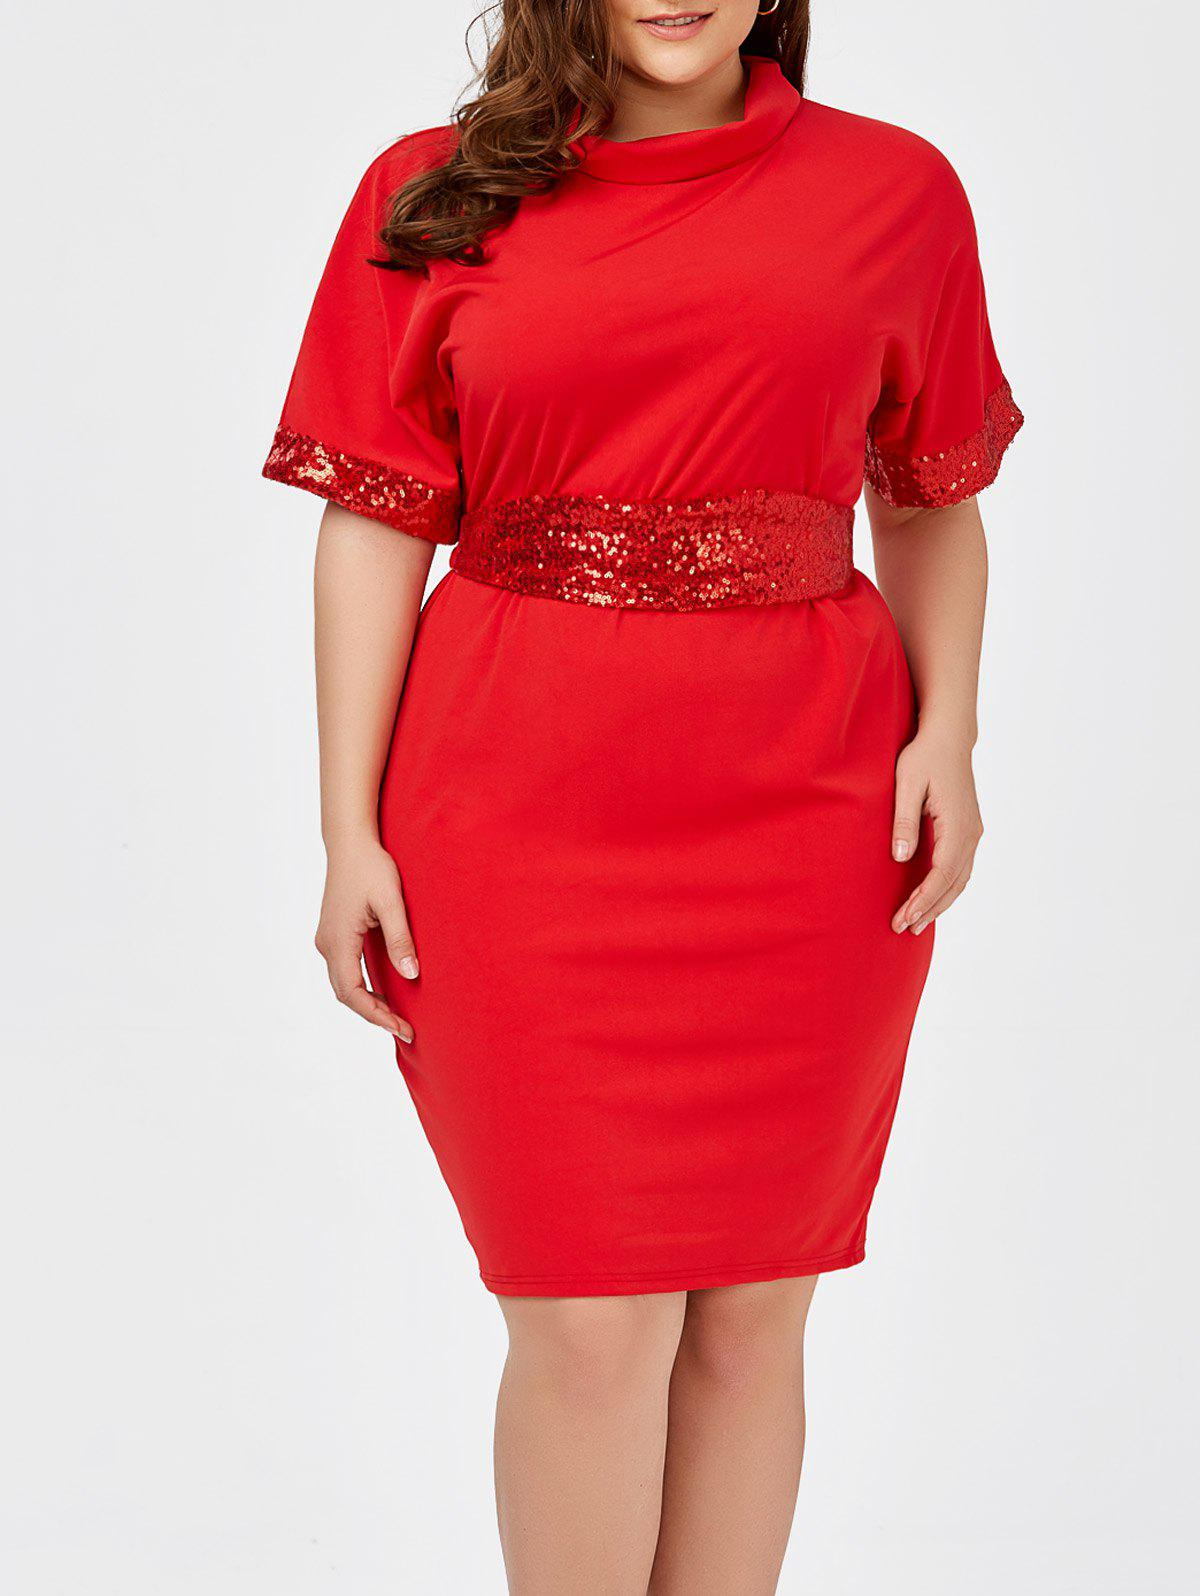 Sequined Belted Plus Size Sheath DressWOMEN<br><br>Size: 3XL; Color: RED; Style: Casual; Material: Cotton Blend,Polyester; Silhouette: Sheath; Dresses Length: Knee-Length; Neckline: Turtleneck; Sleeve Length: Short Sleeves; Embellishment: Sequins; Pattern Type: Solid; With Belt: Yes; Season: Spring,Summer; Weight: 0.4300kg; Package Contents: 1 x Dress  1 x Belt;